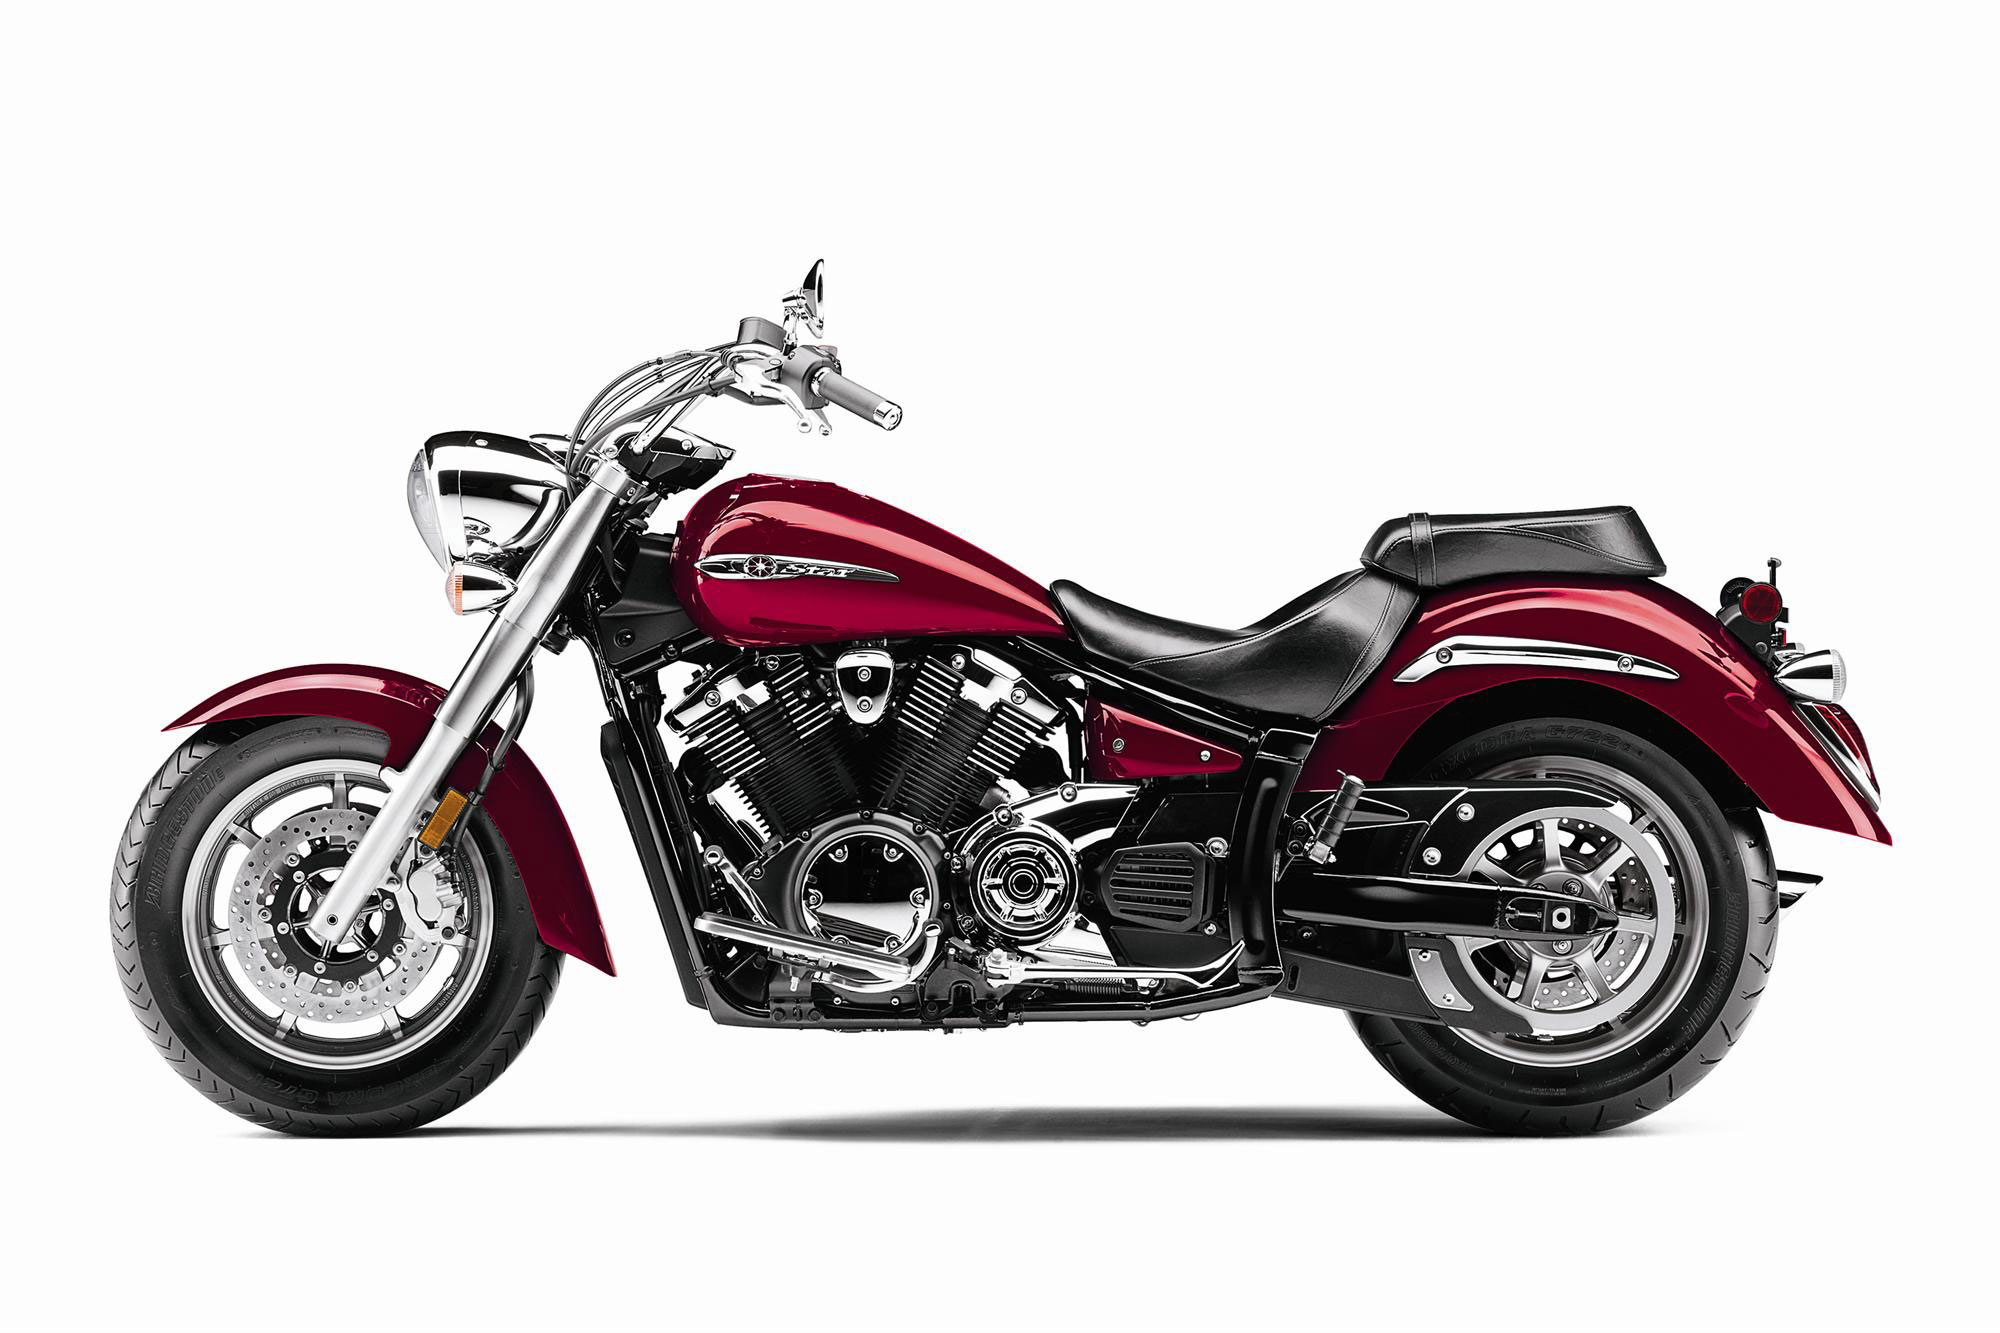 2012 yamaha v star 1300 review